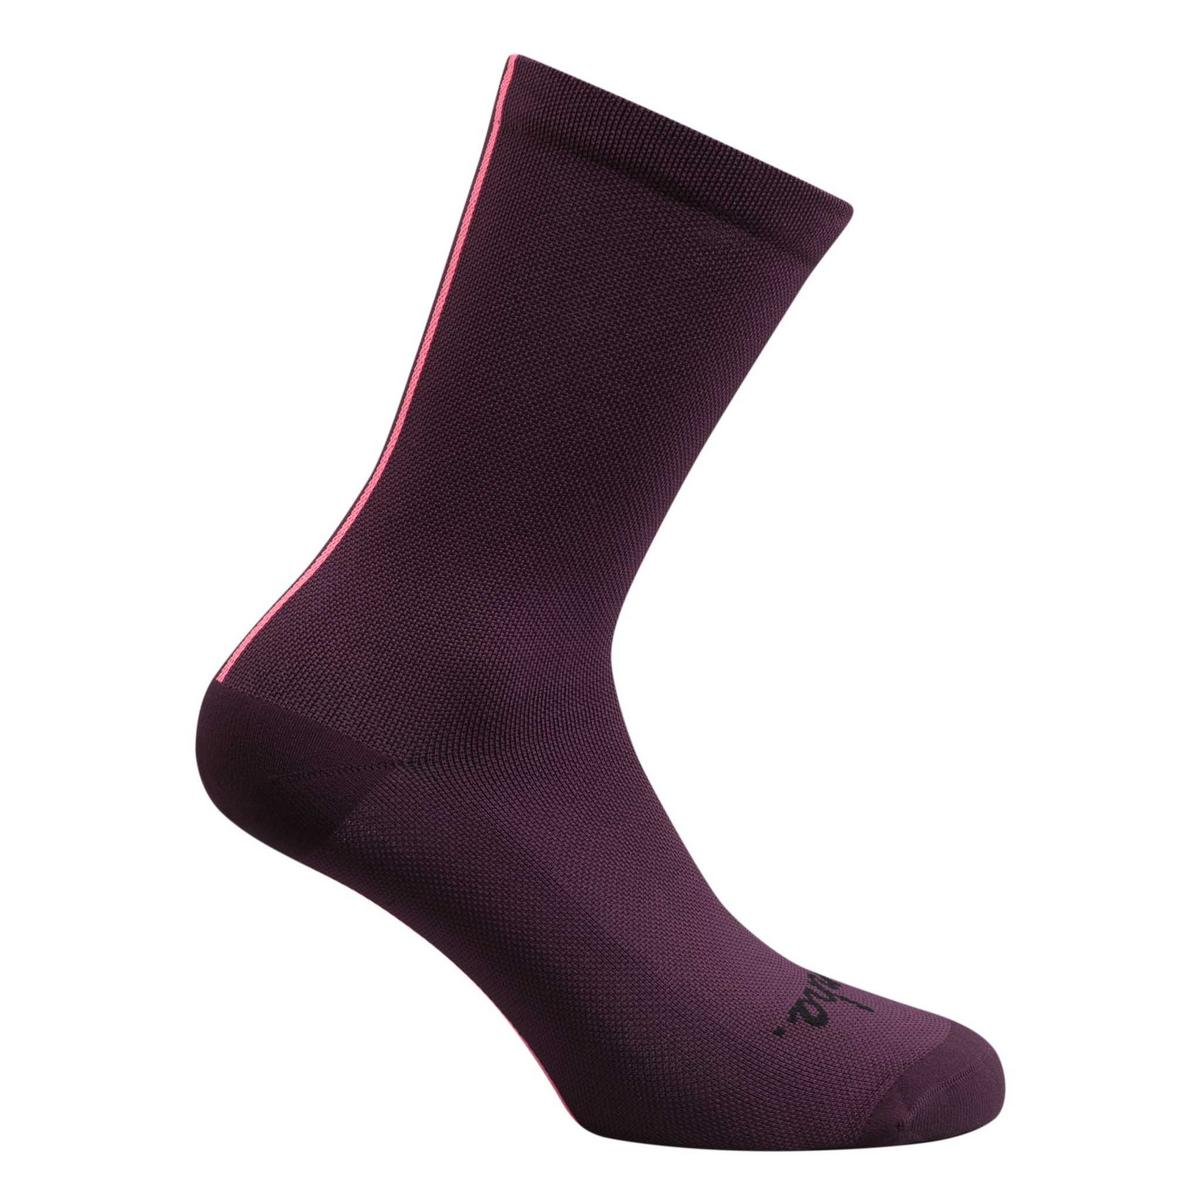 Souplesse Socks - Regular